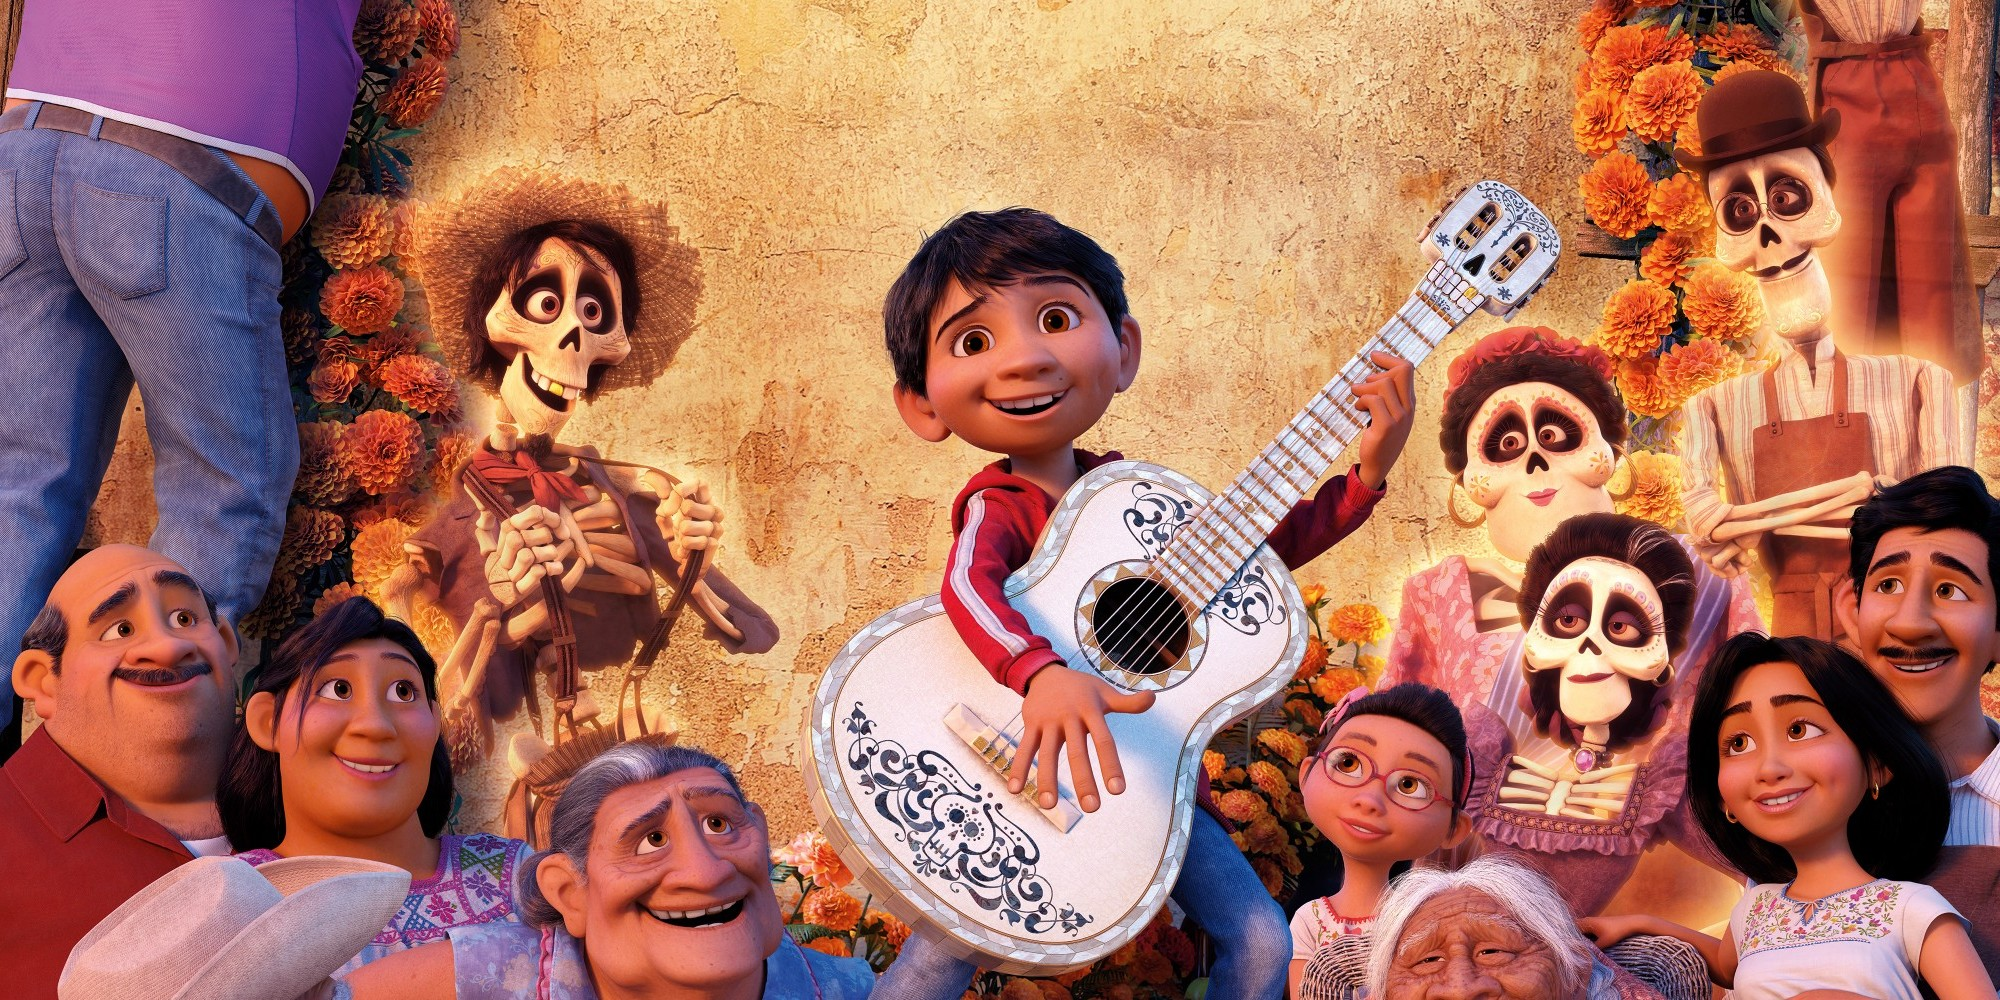 It's just an image of Nerdy Coco Movie Images